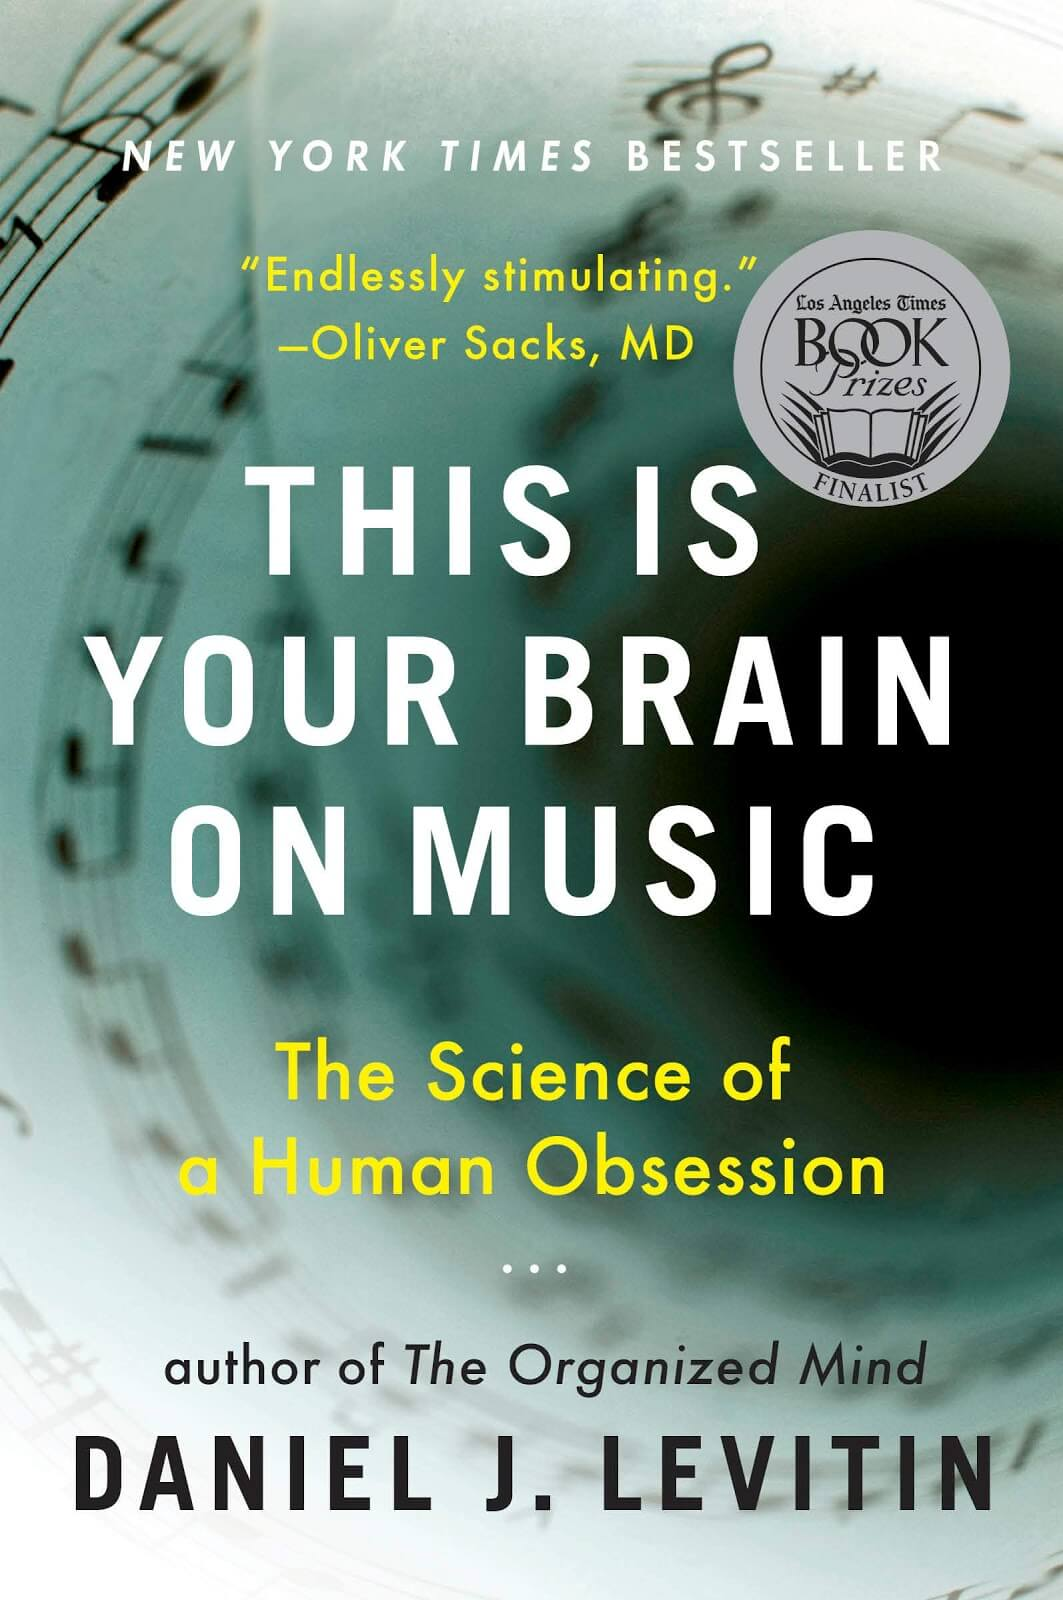 Green book cover of This is Your Brain on Music with music notes